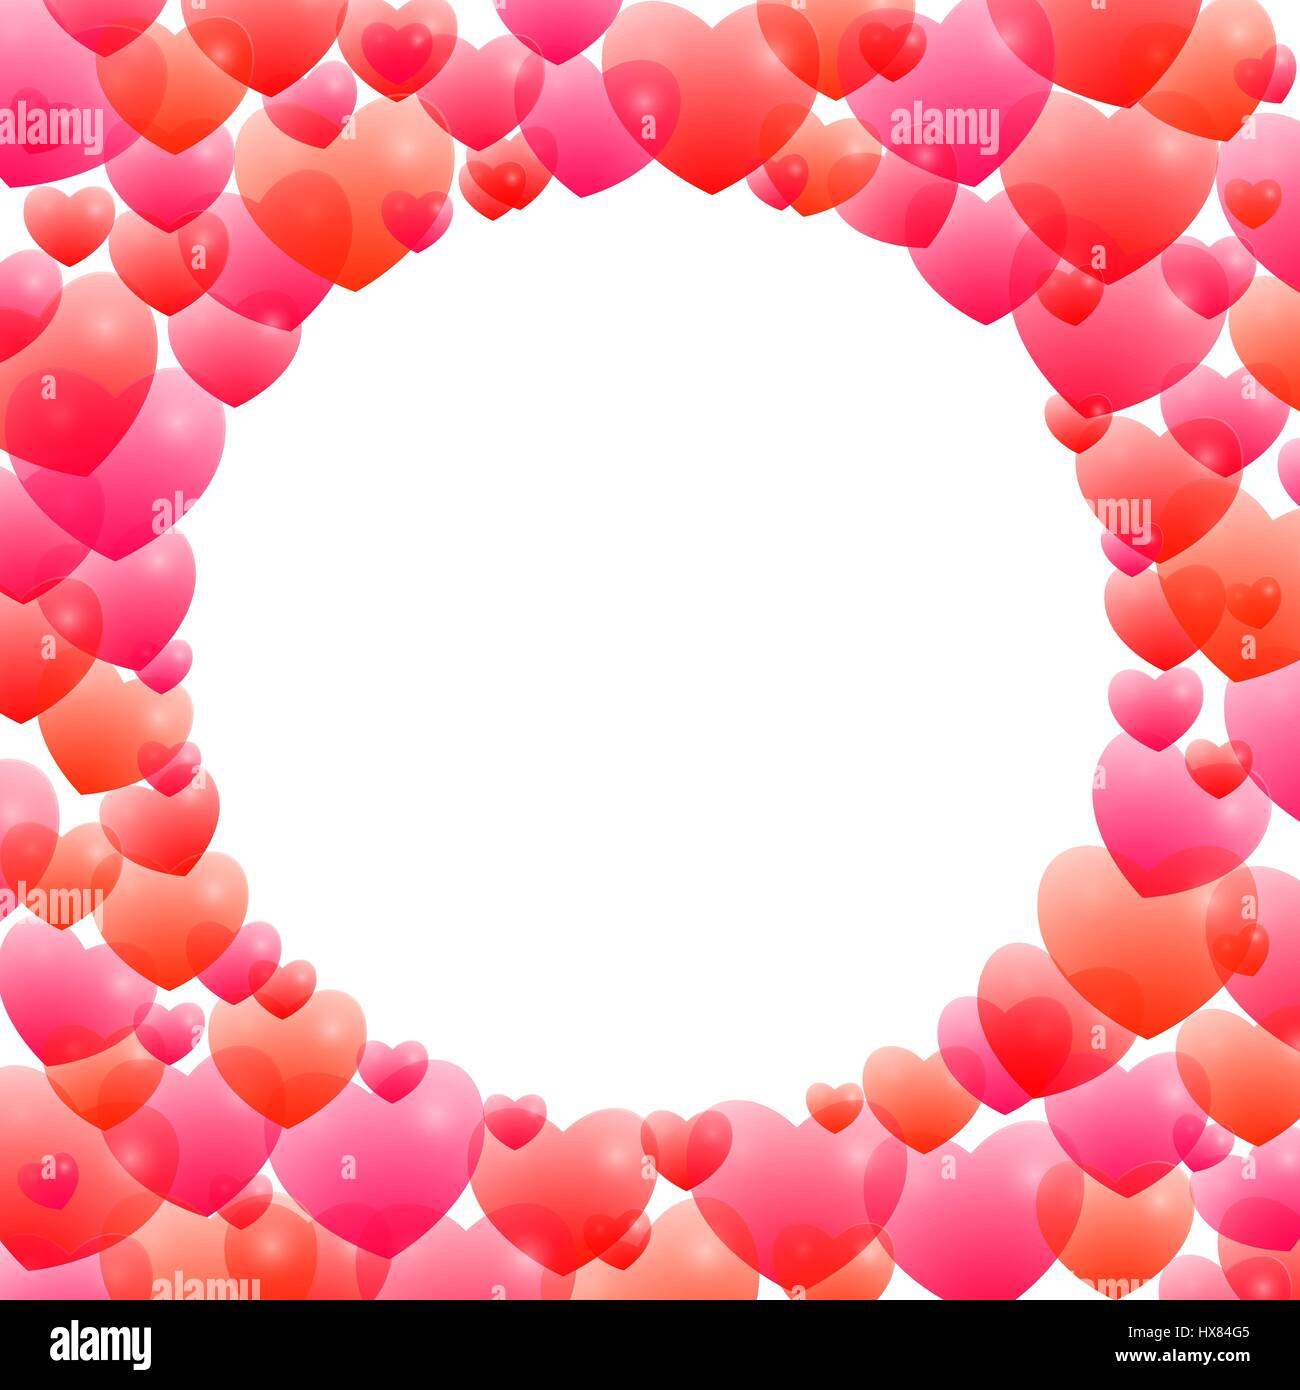 Pink Square Love Hearts Heart Frame Border Stock Photos & Pink ...